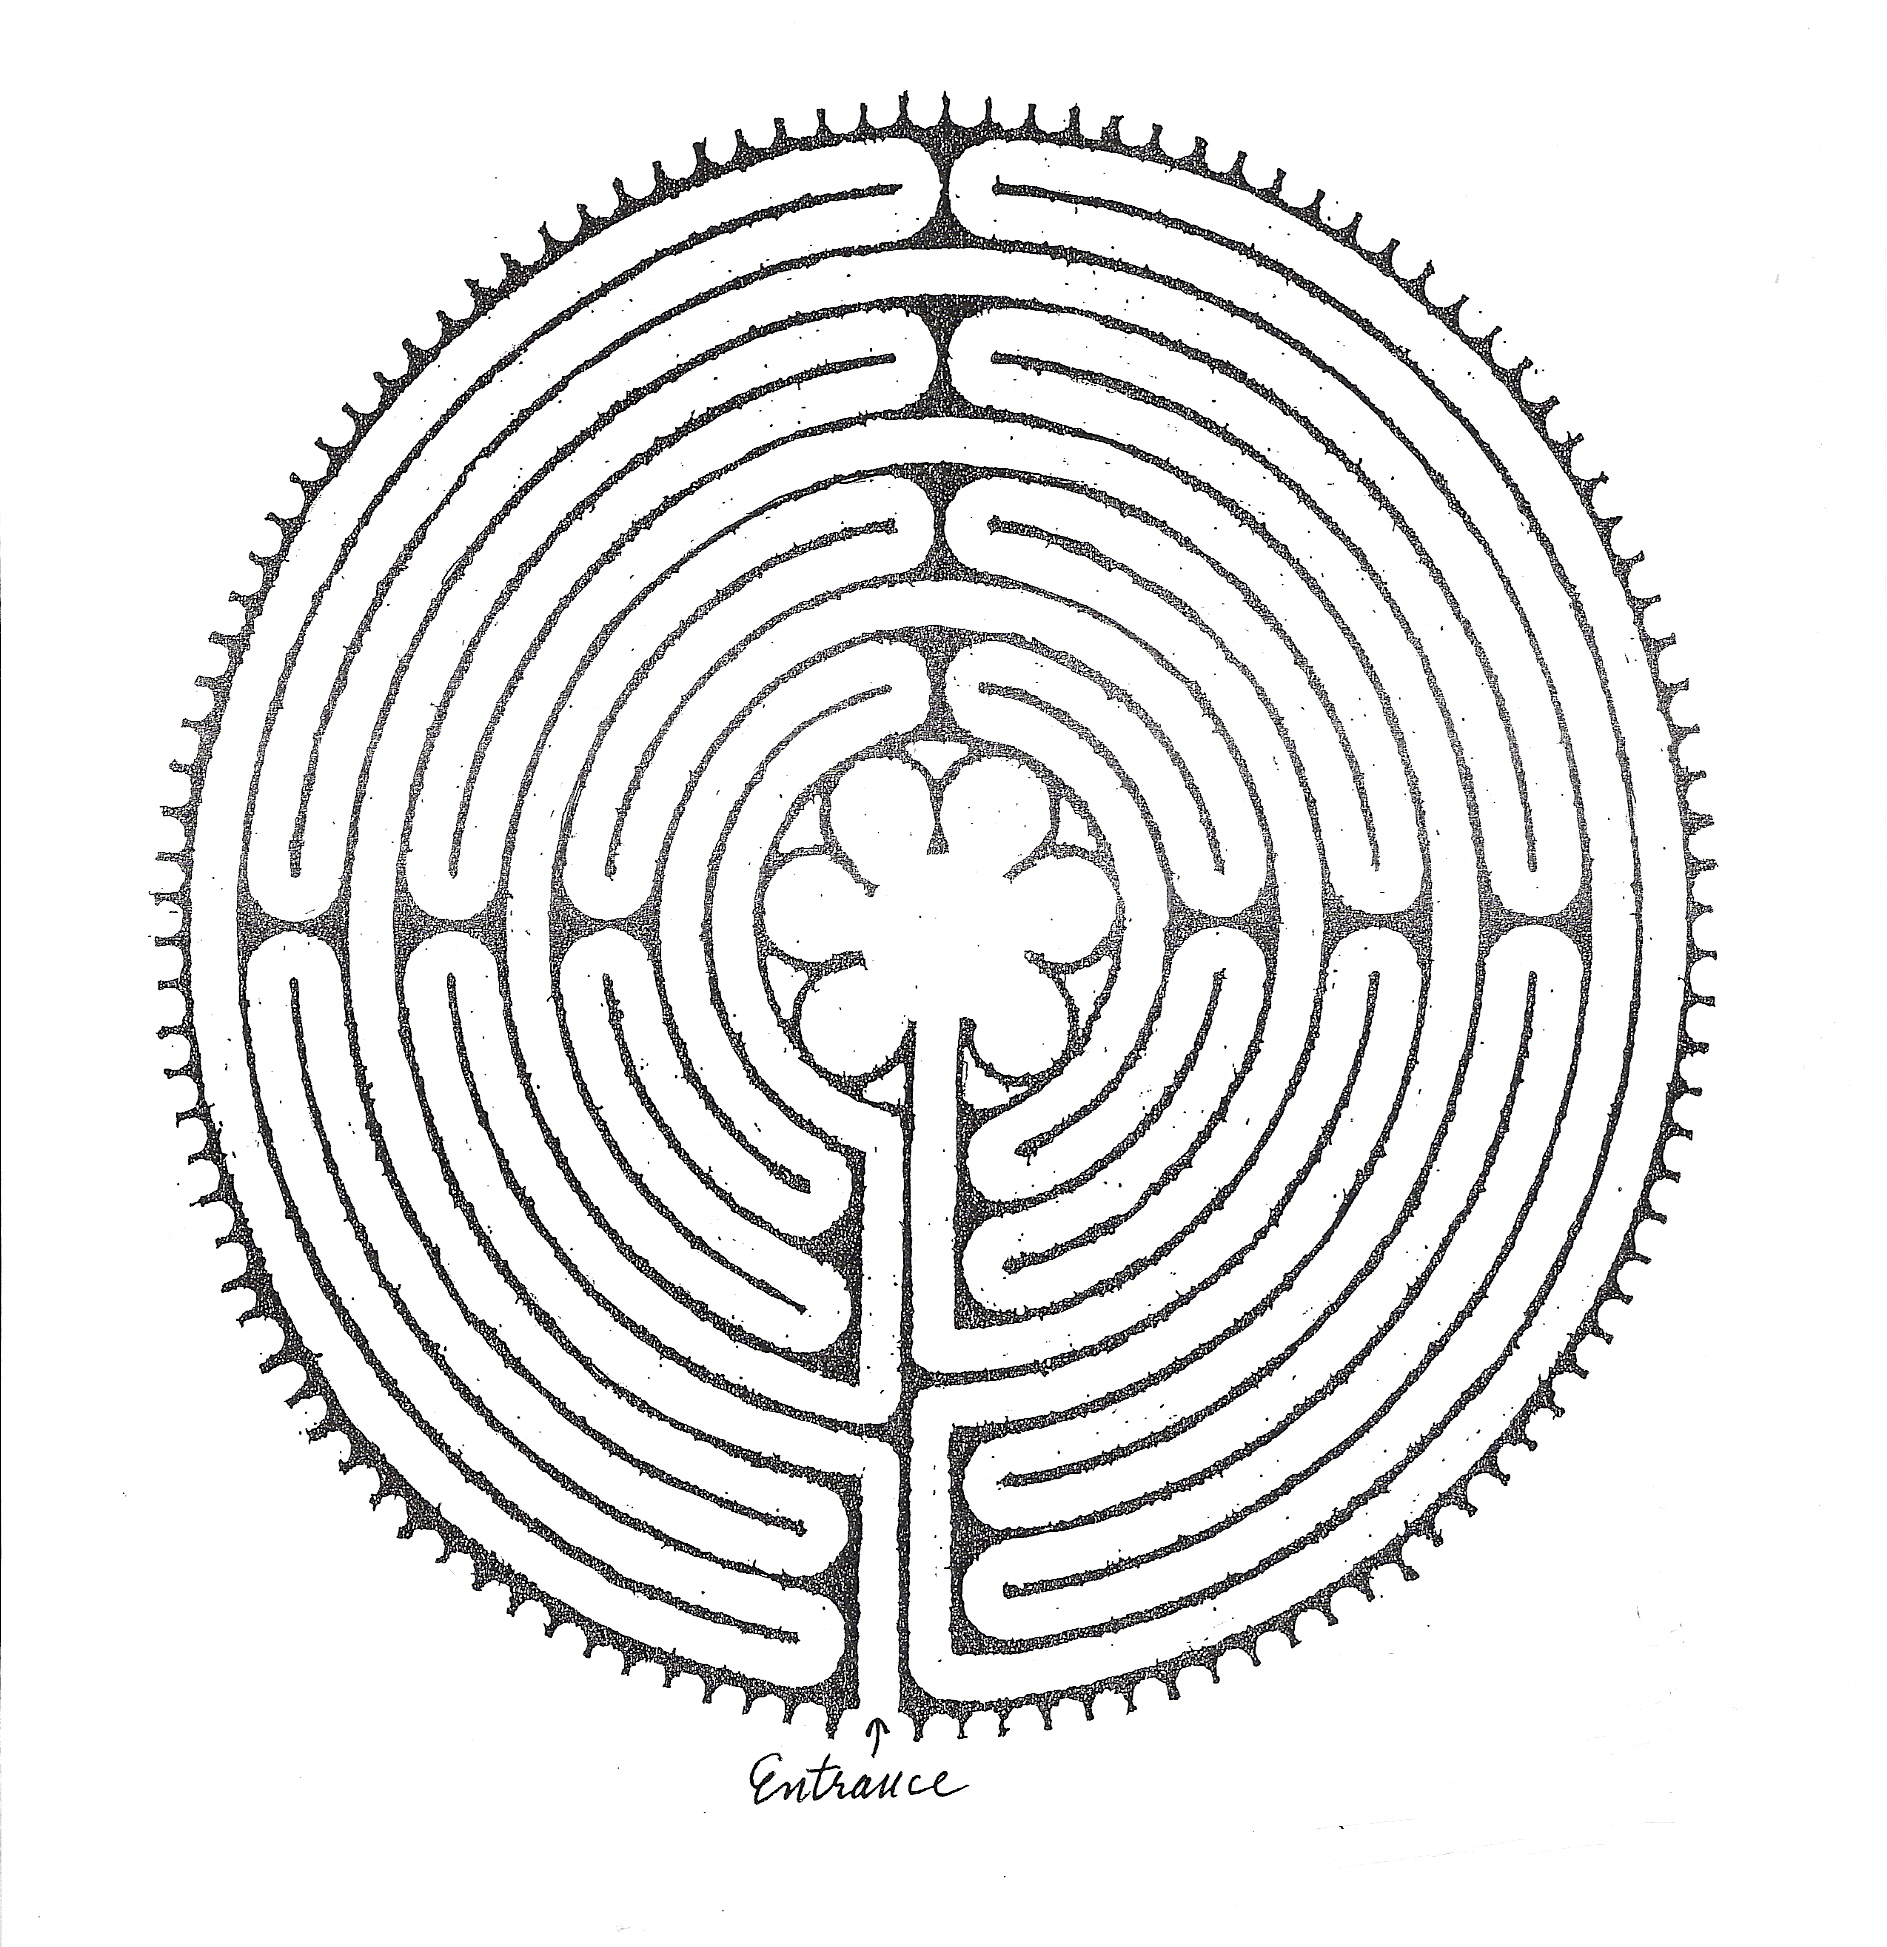 Labyrinth Designs Garden labyrinth garden beautiful I Bought The Design From The Grace Cathedral Veriditas Project That Dr Artress Was Promoting Through The Church And Around America The Labyrinth Design